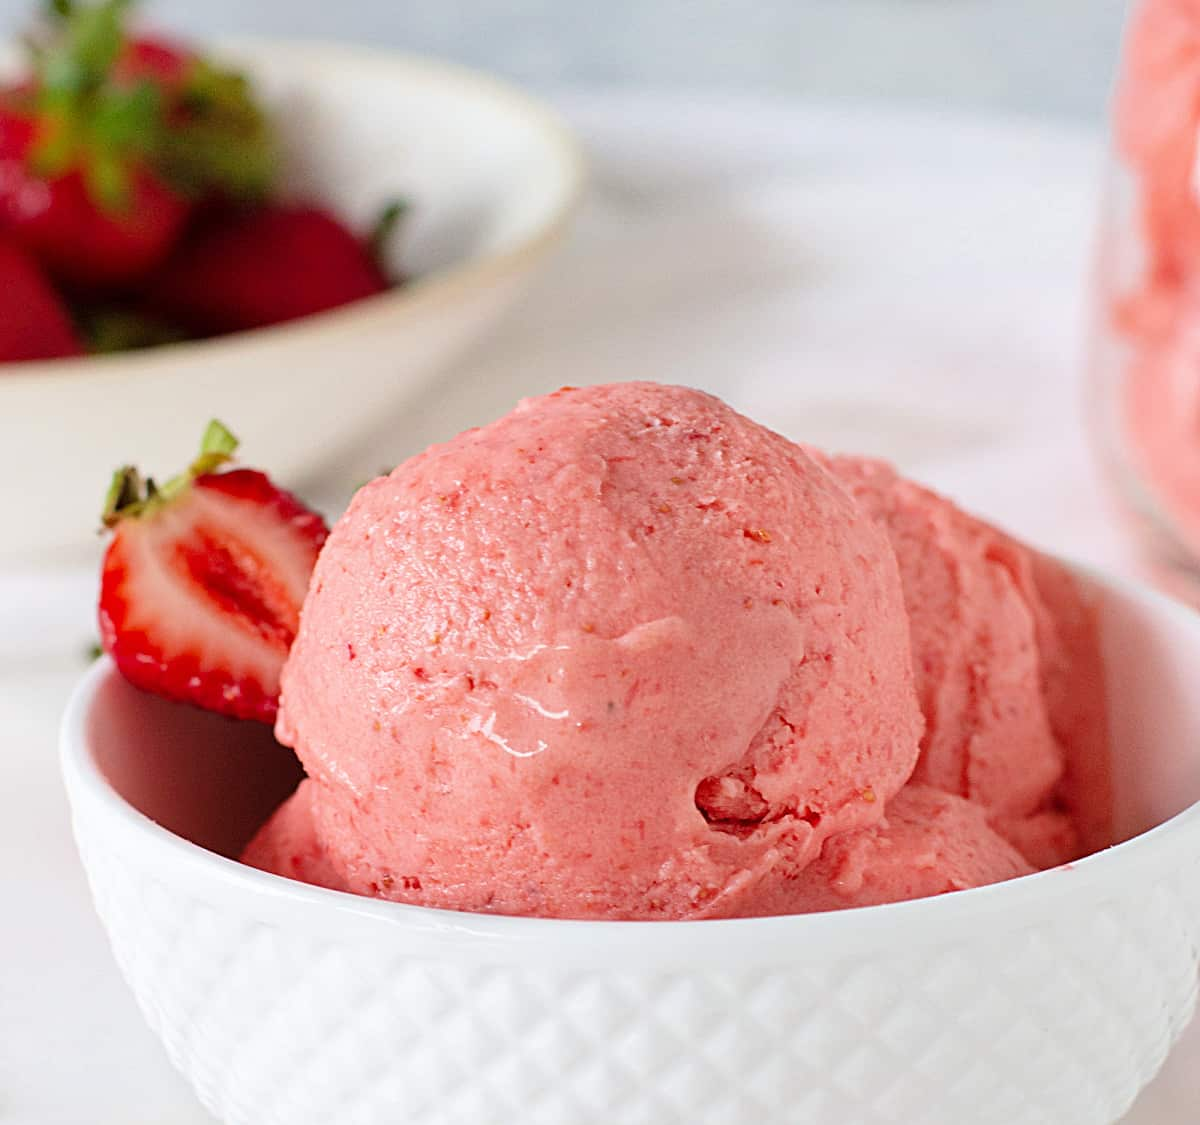 White patterned bowl with strawberry ice cream, more strawberries as background